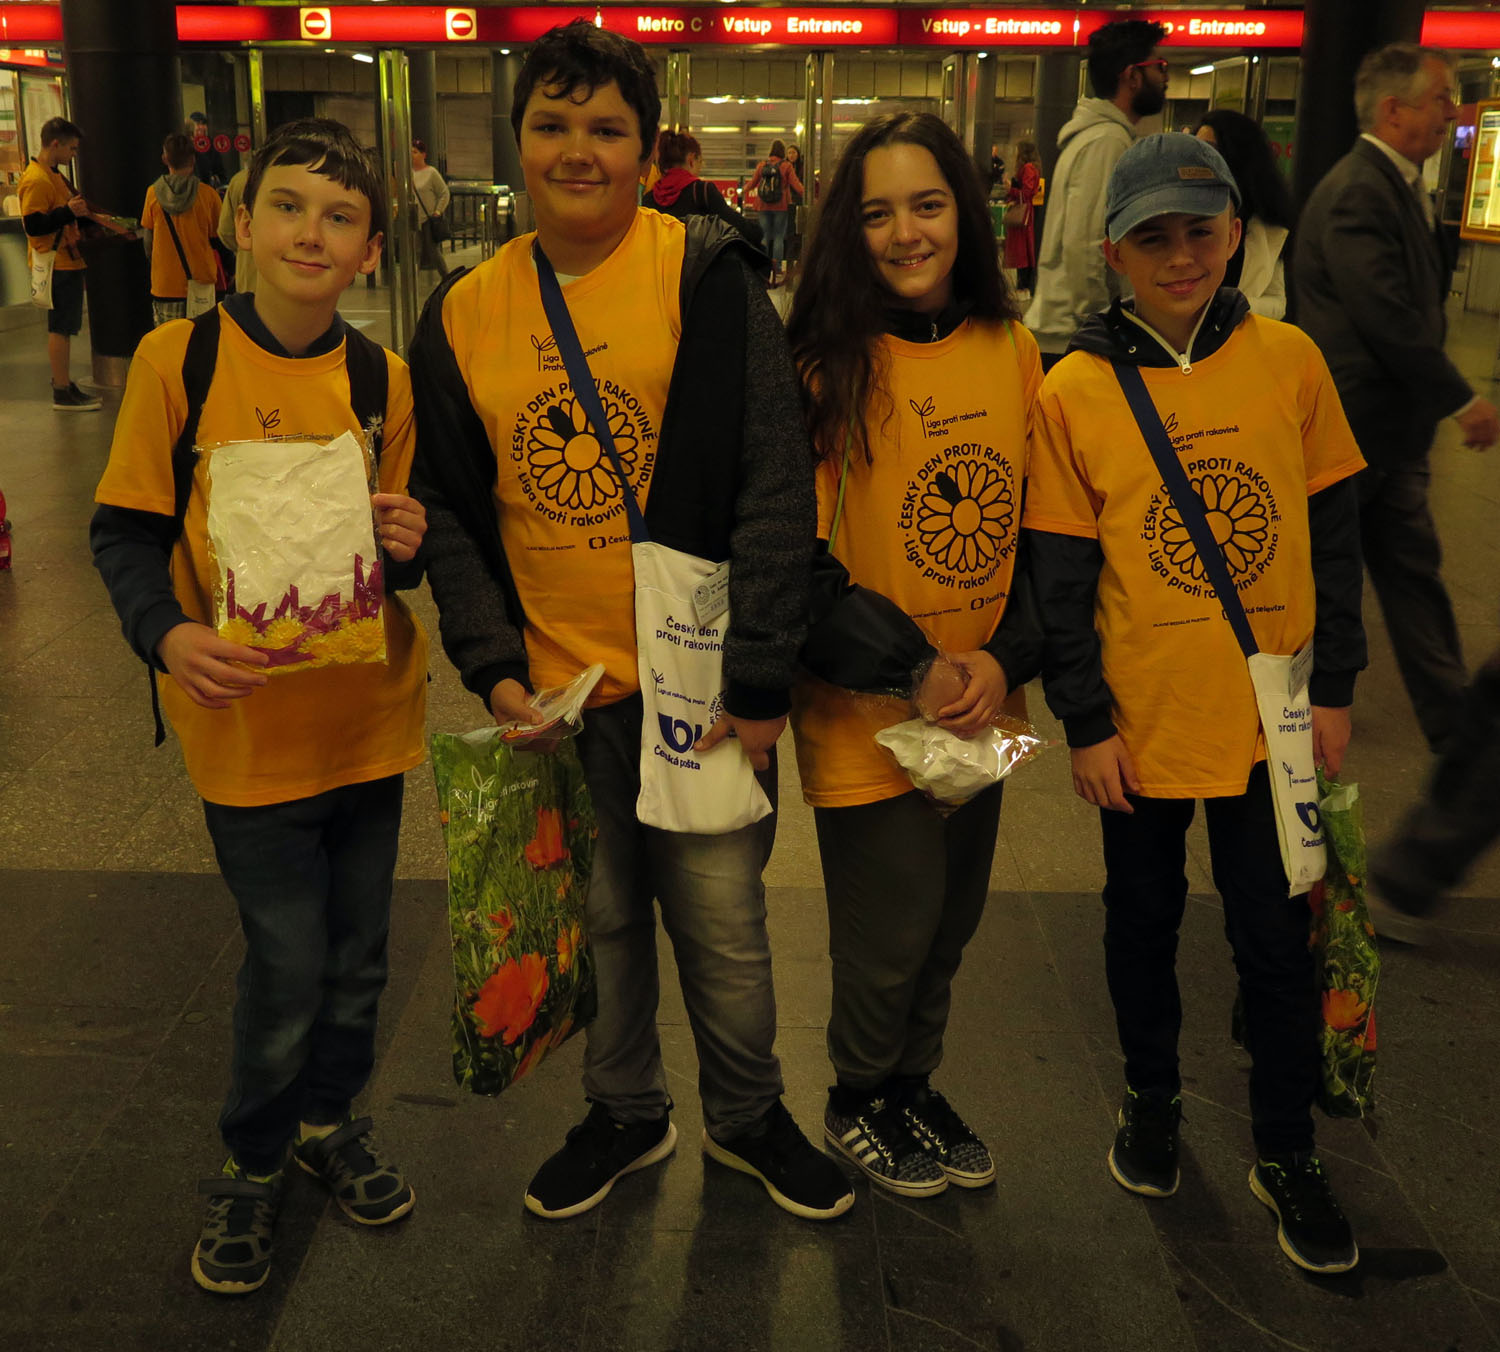 czech-republic-prague-kids-against-cancer